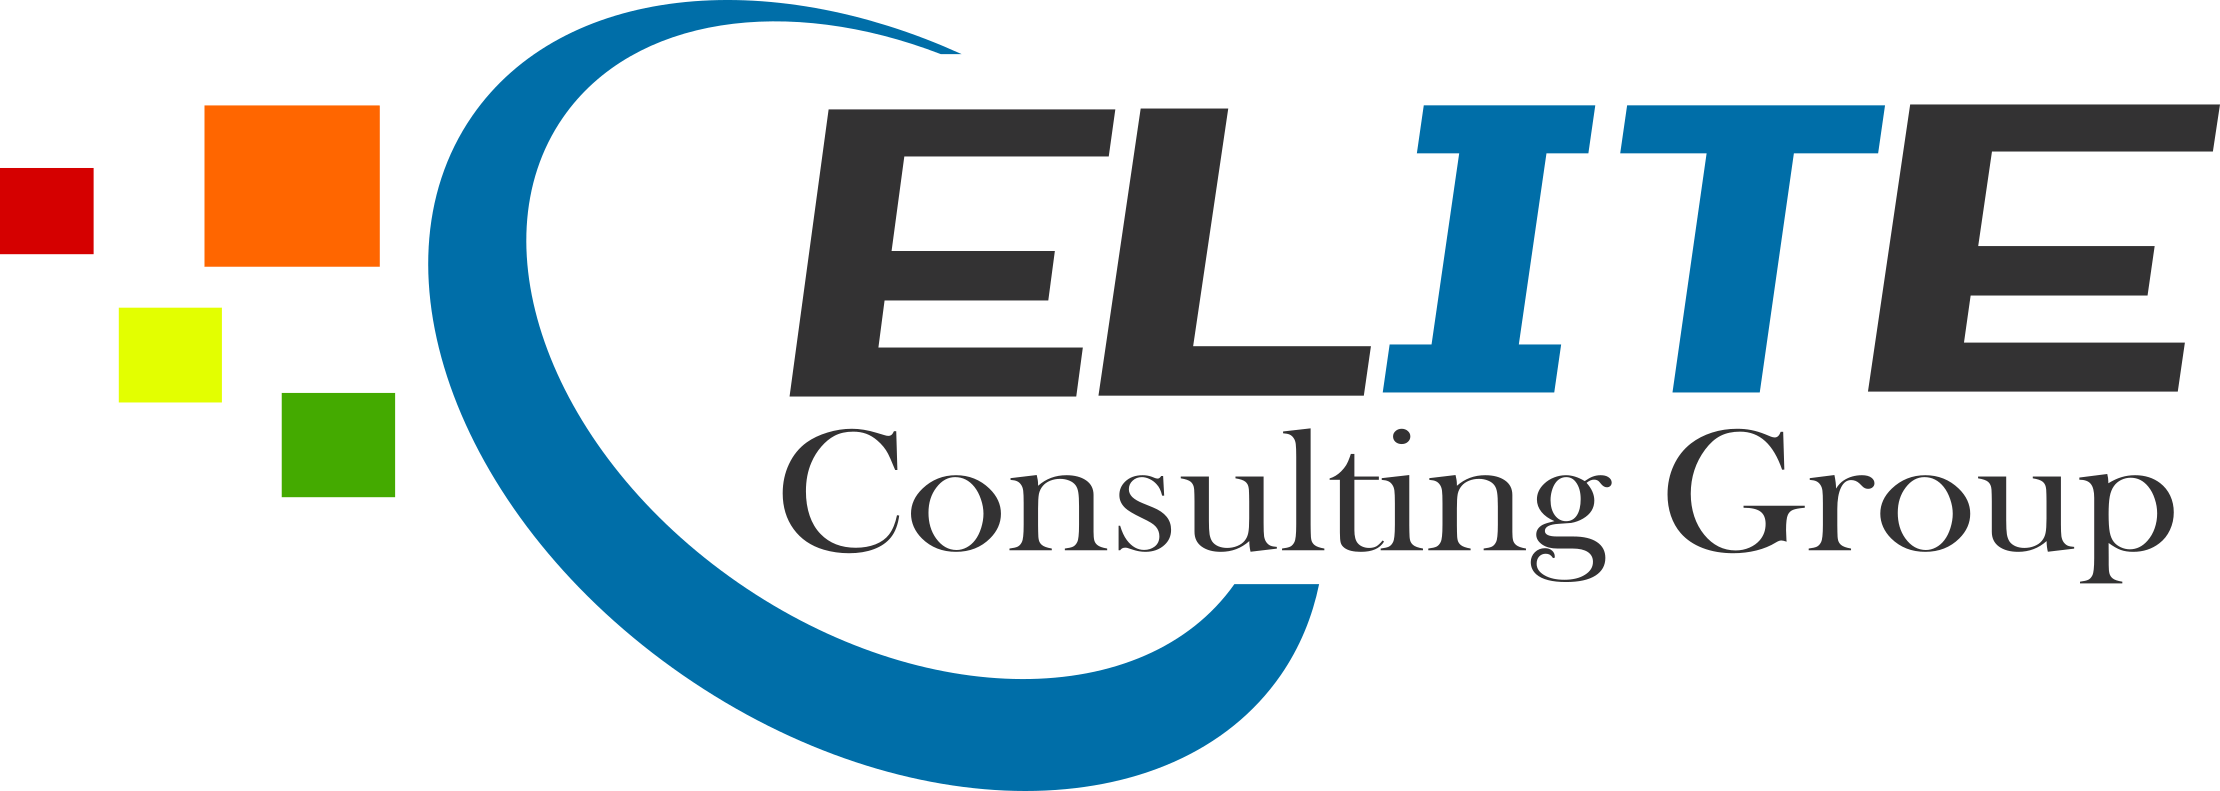 Company logo of Elite IT